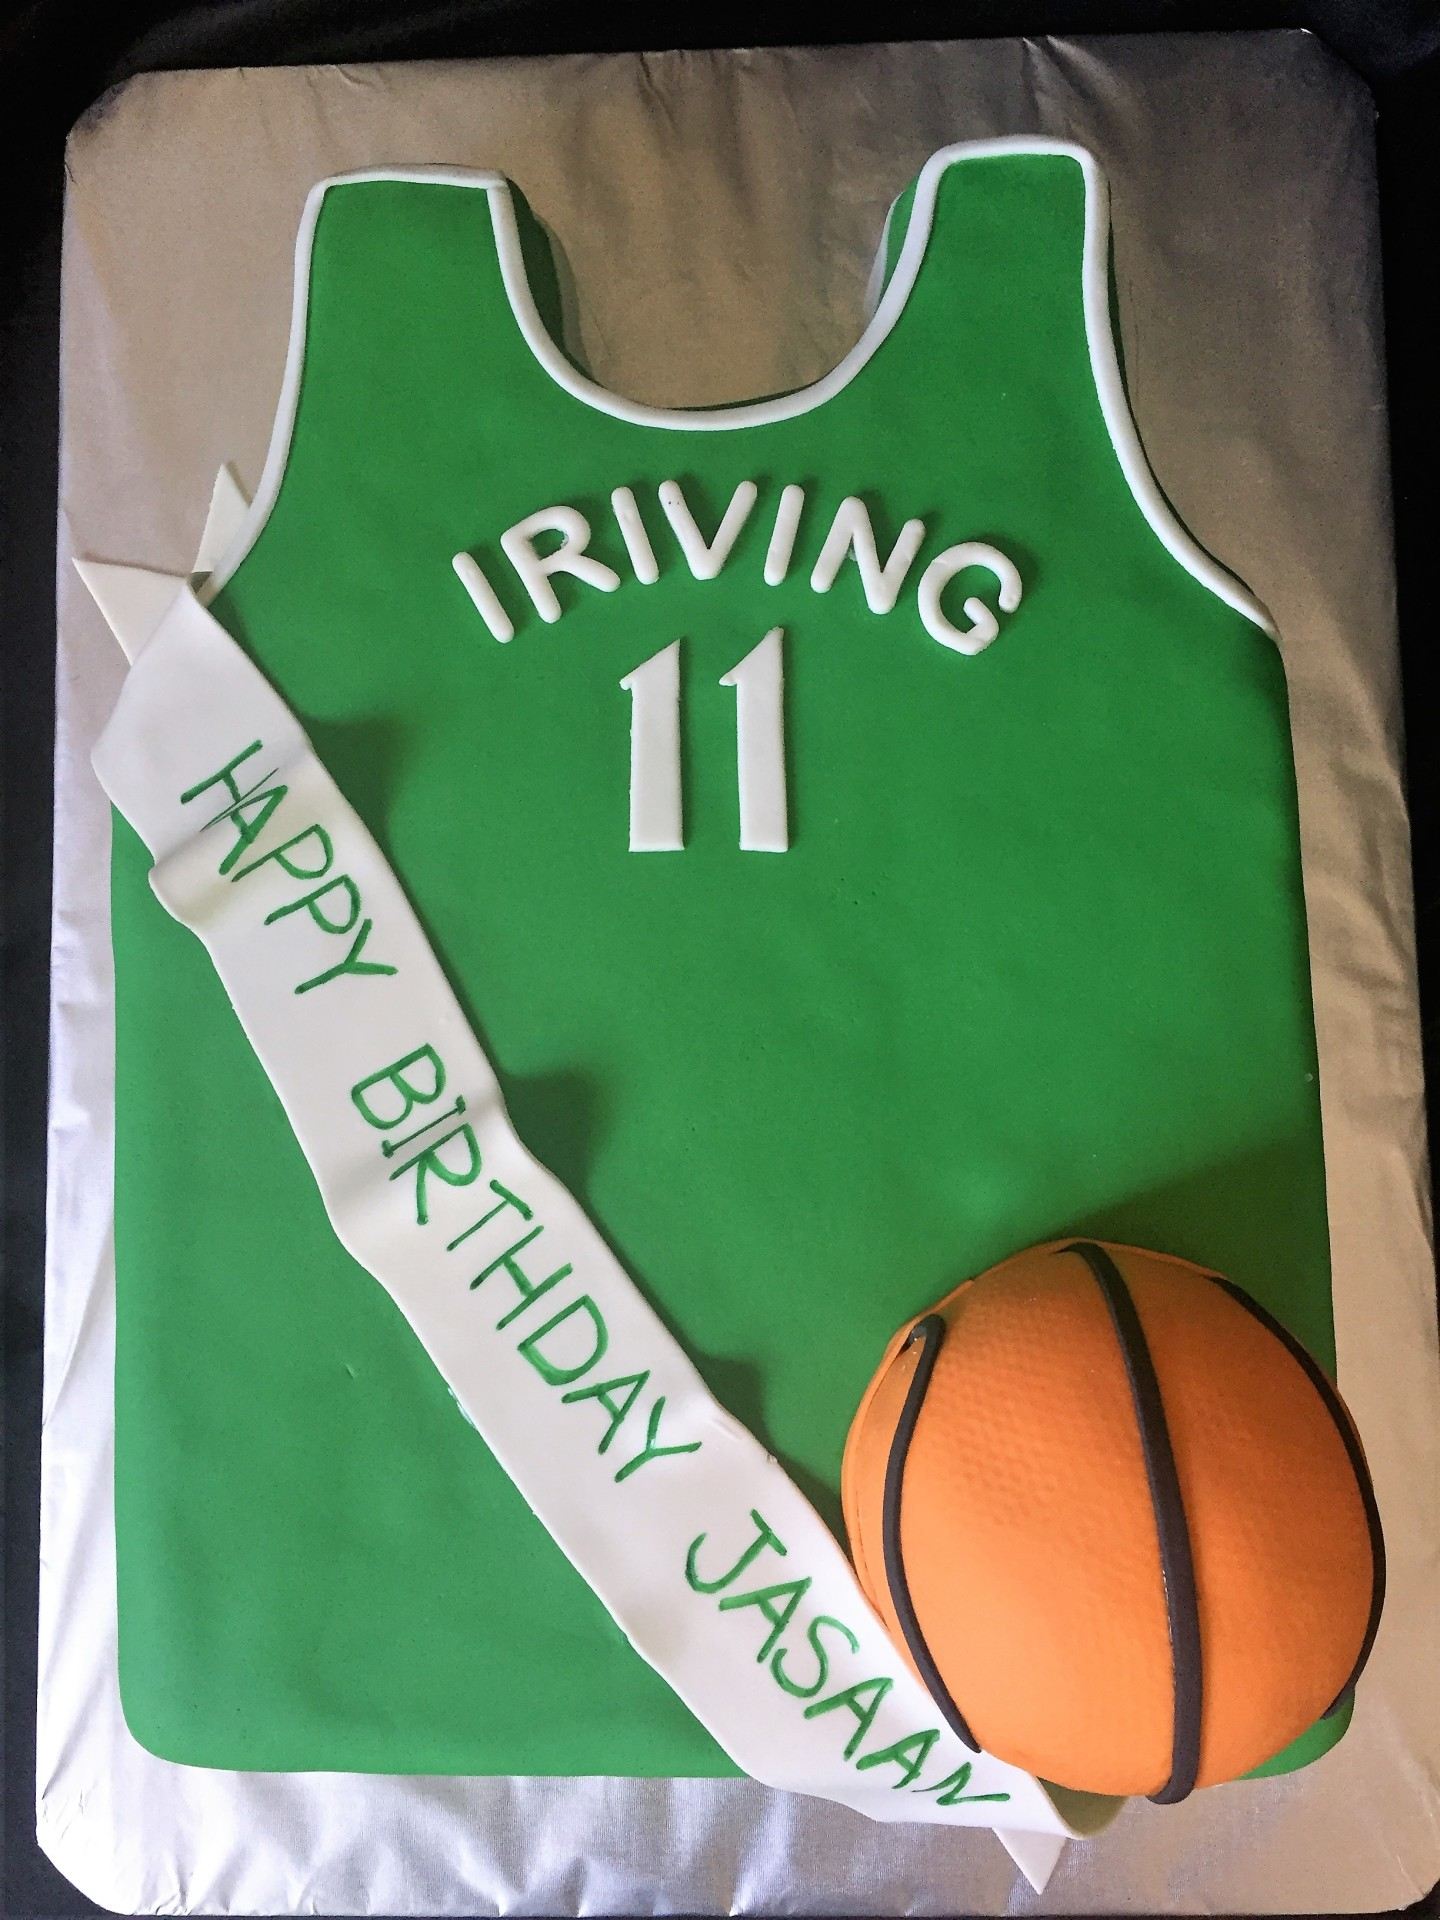 Green jersey basketball